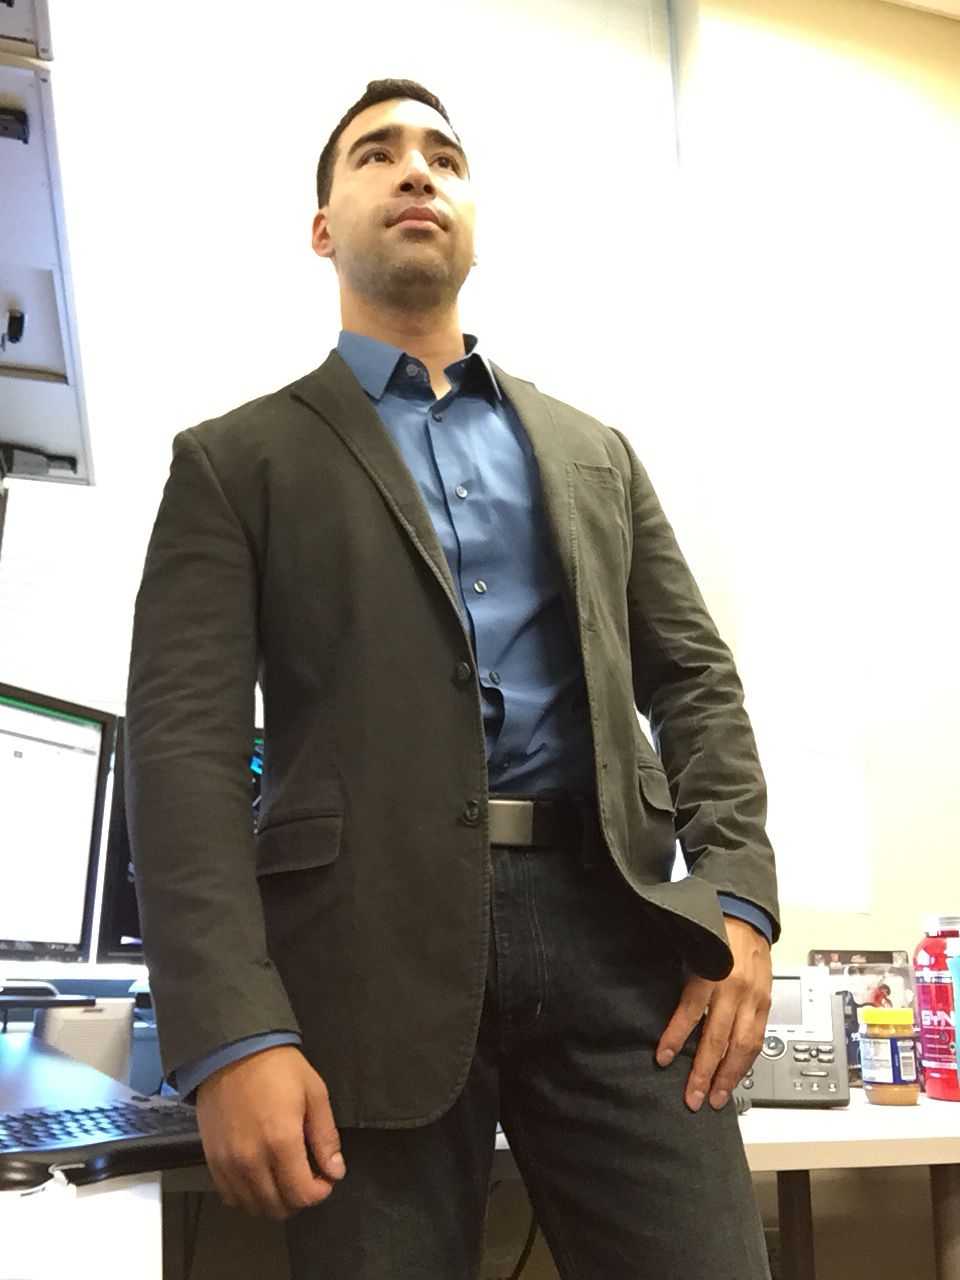 Jeans and Sports Coat Business casual attire, Suit